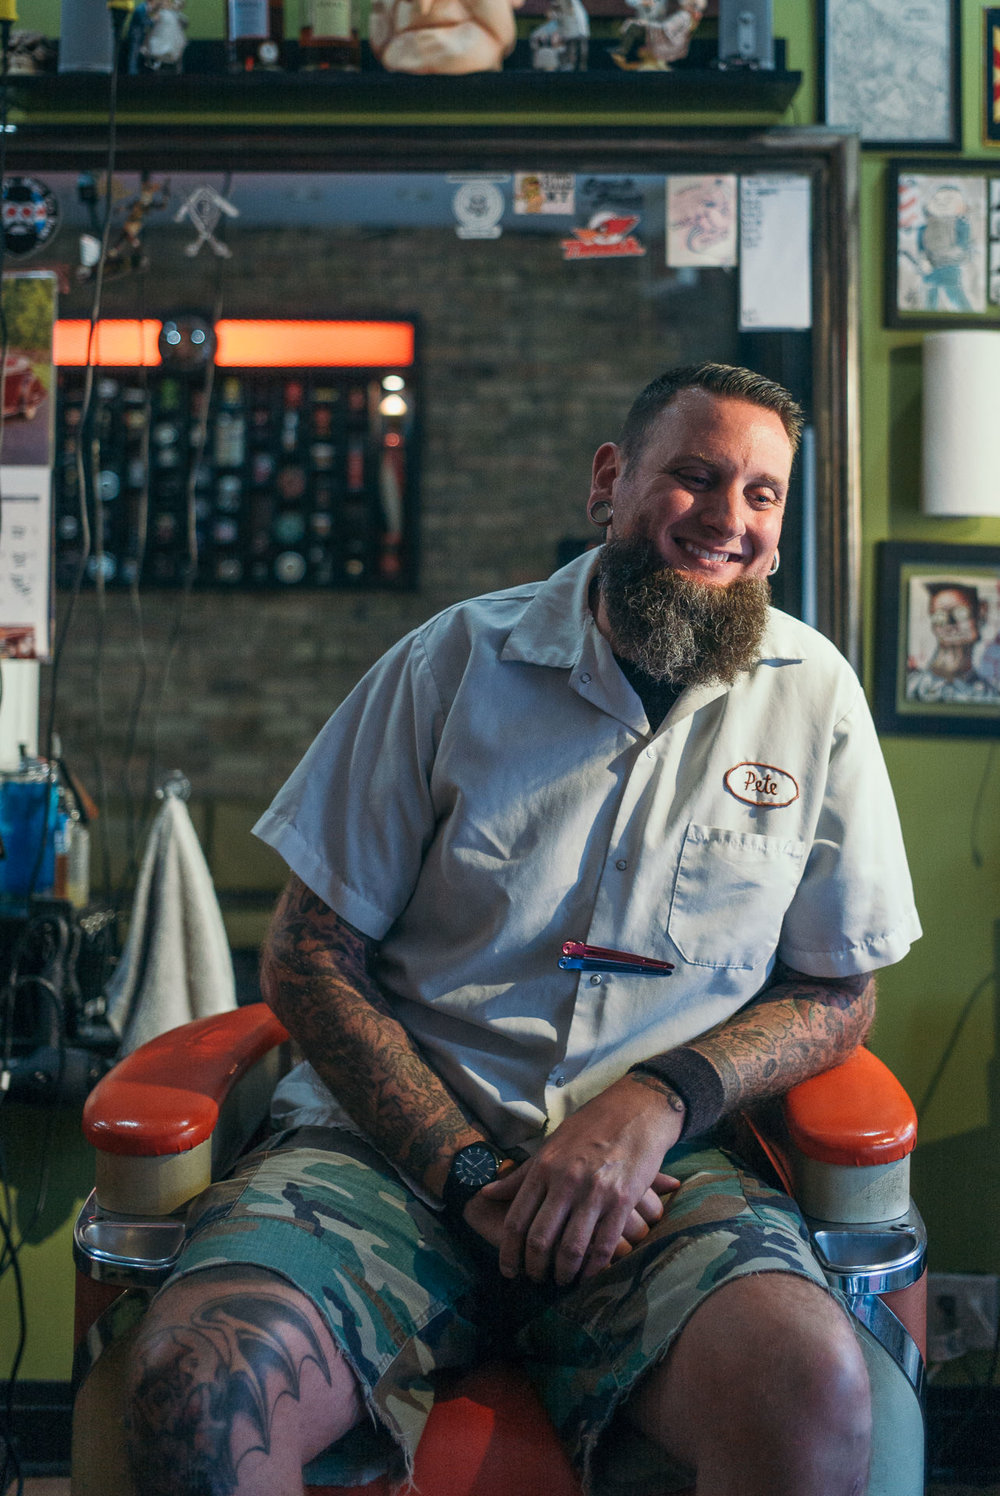 petes_barber_shop_chicago_pete.jpg